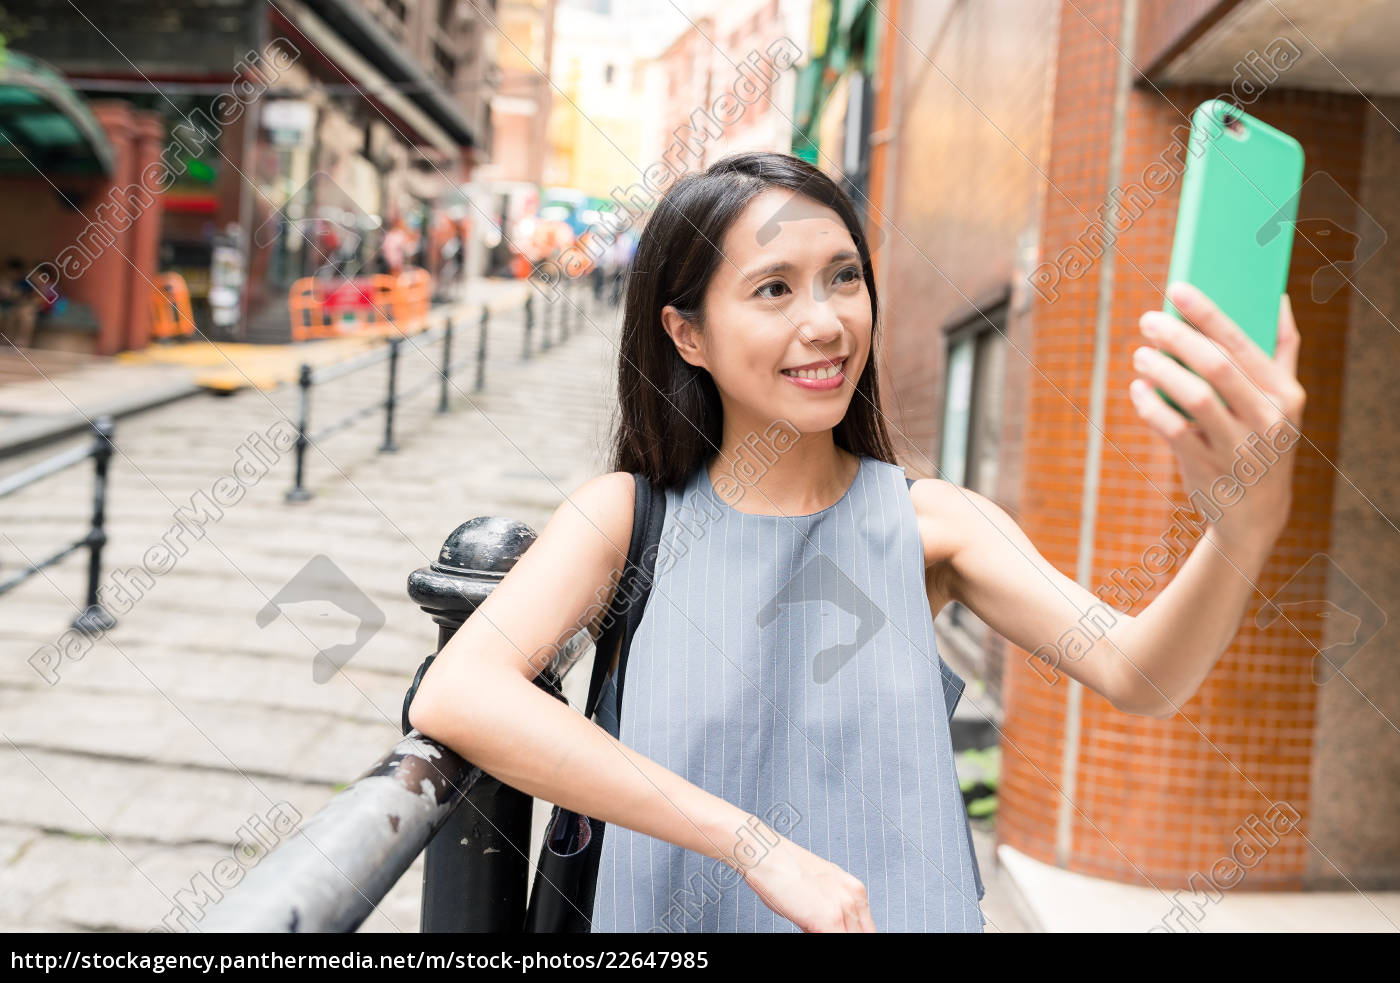 woman, taking, selfie, with, mobile, phone - 22647985